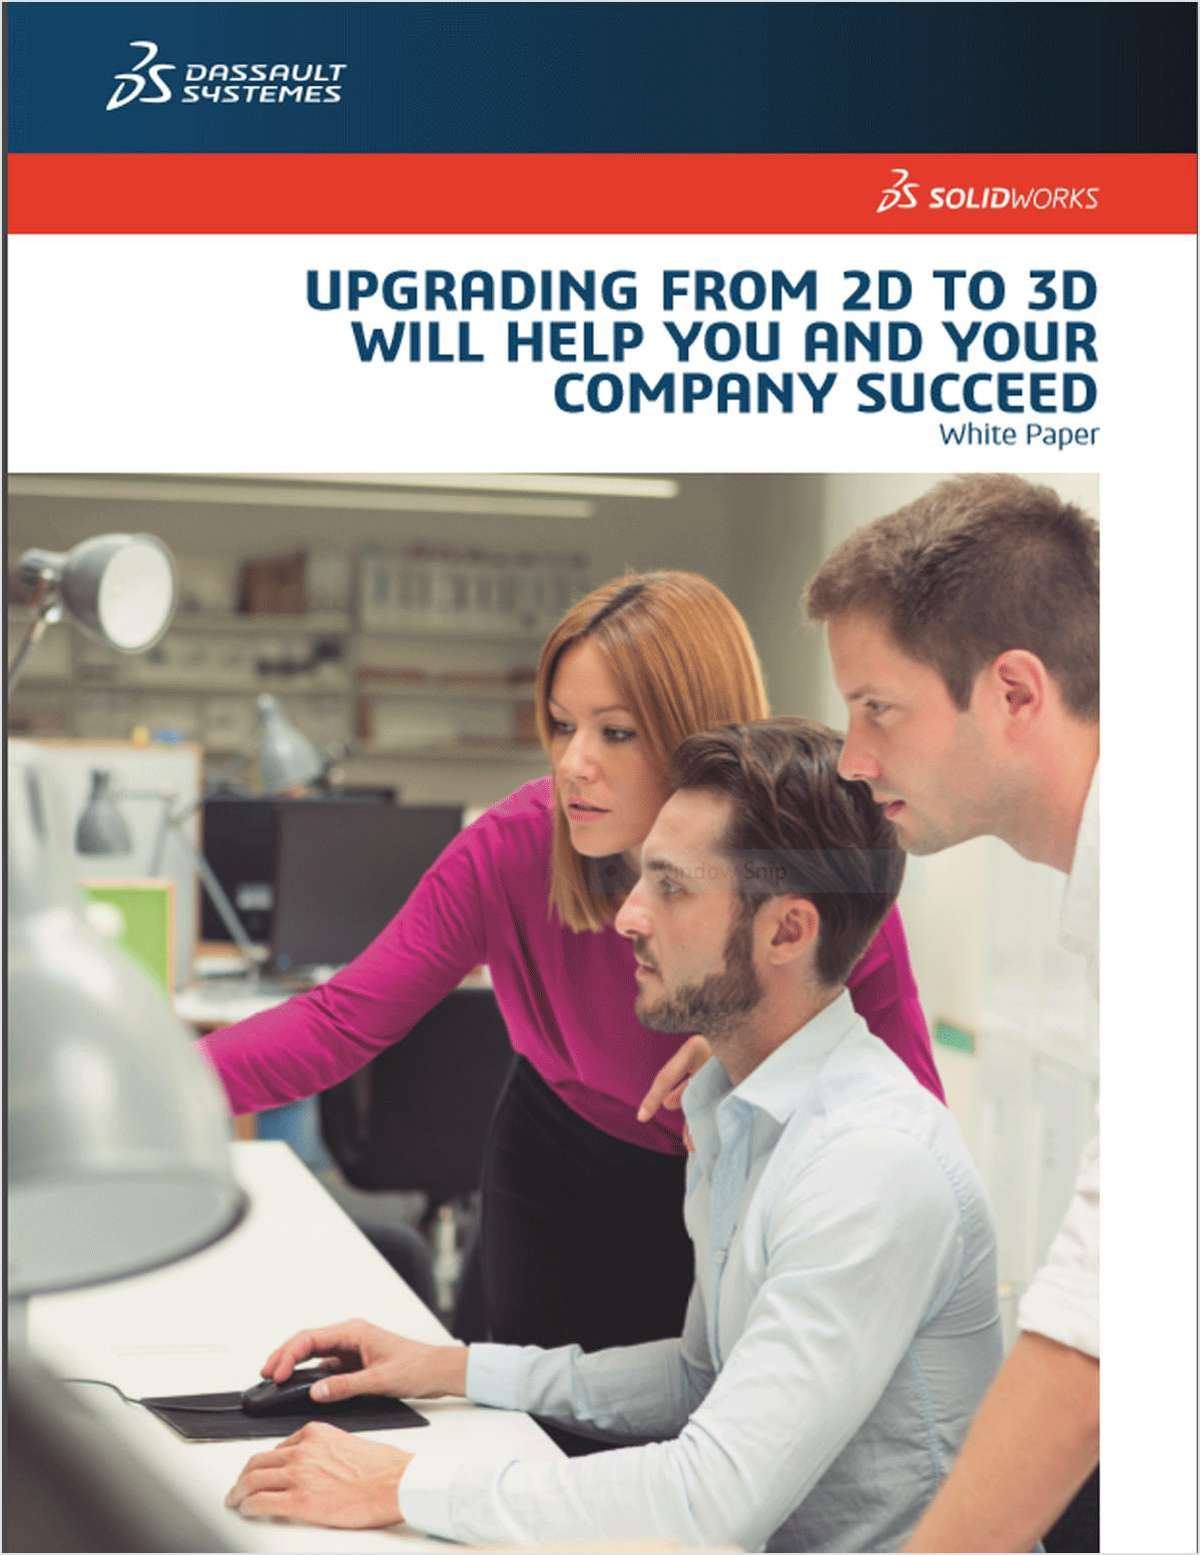 Busting the Myths About Upgrading to 3D Technology